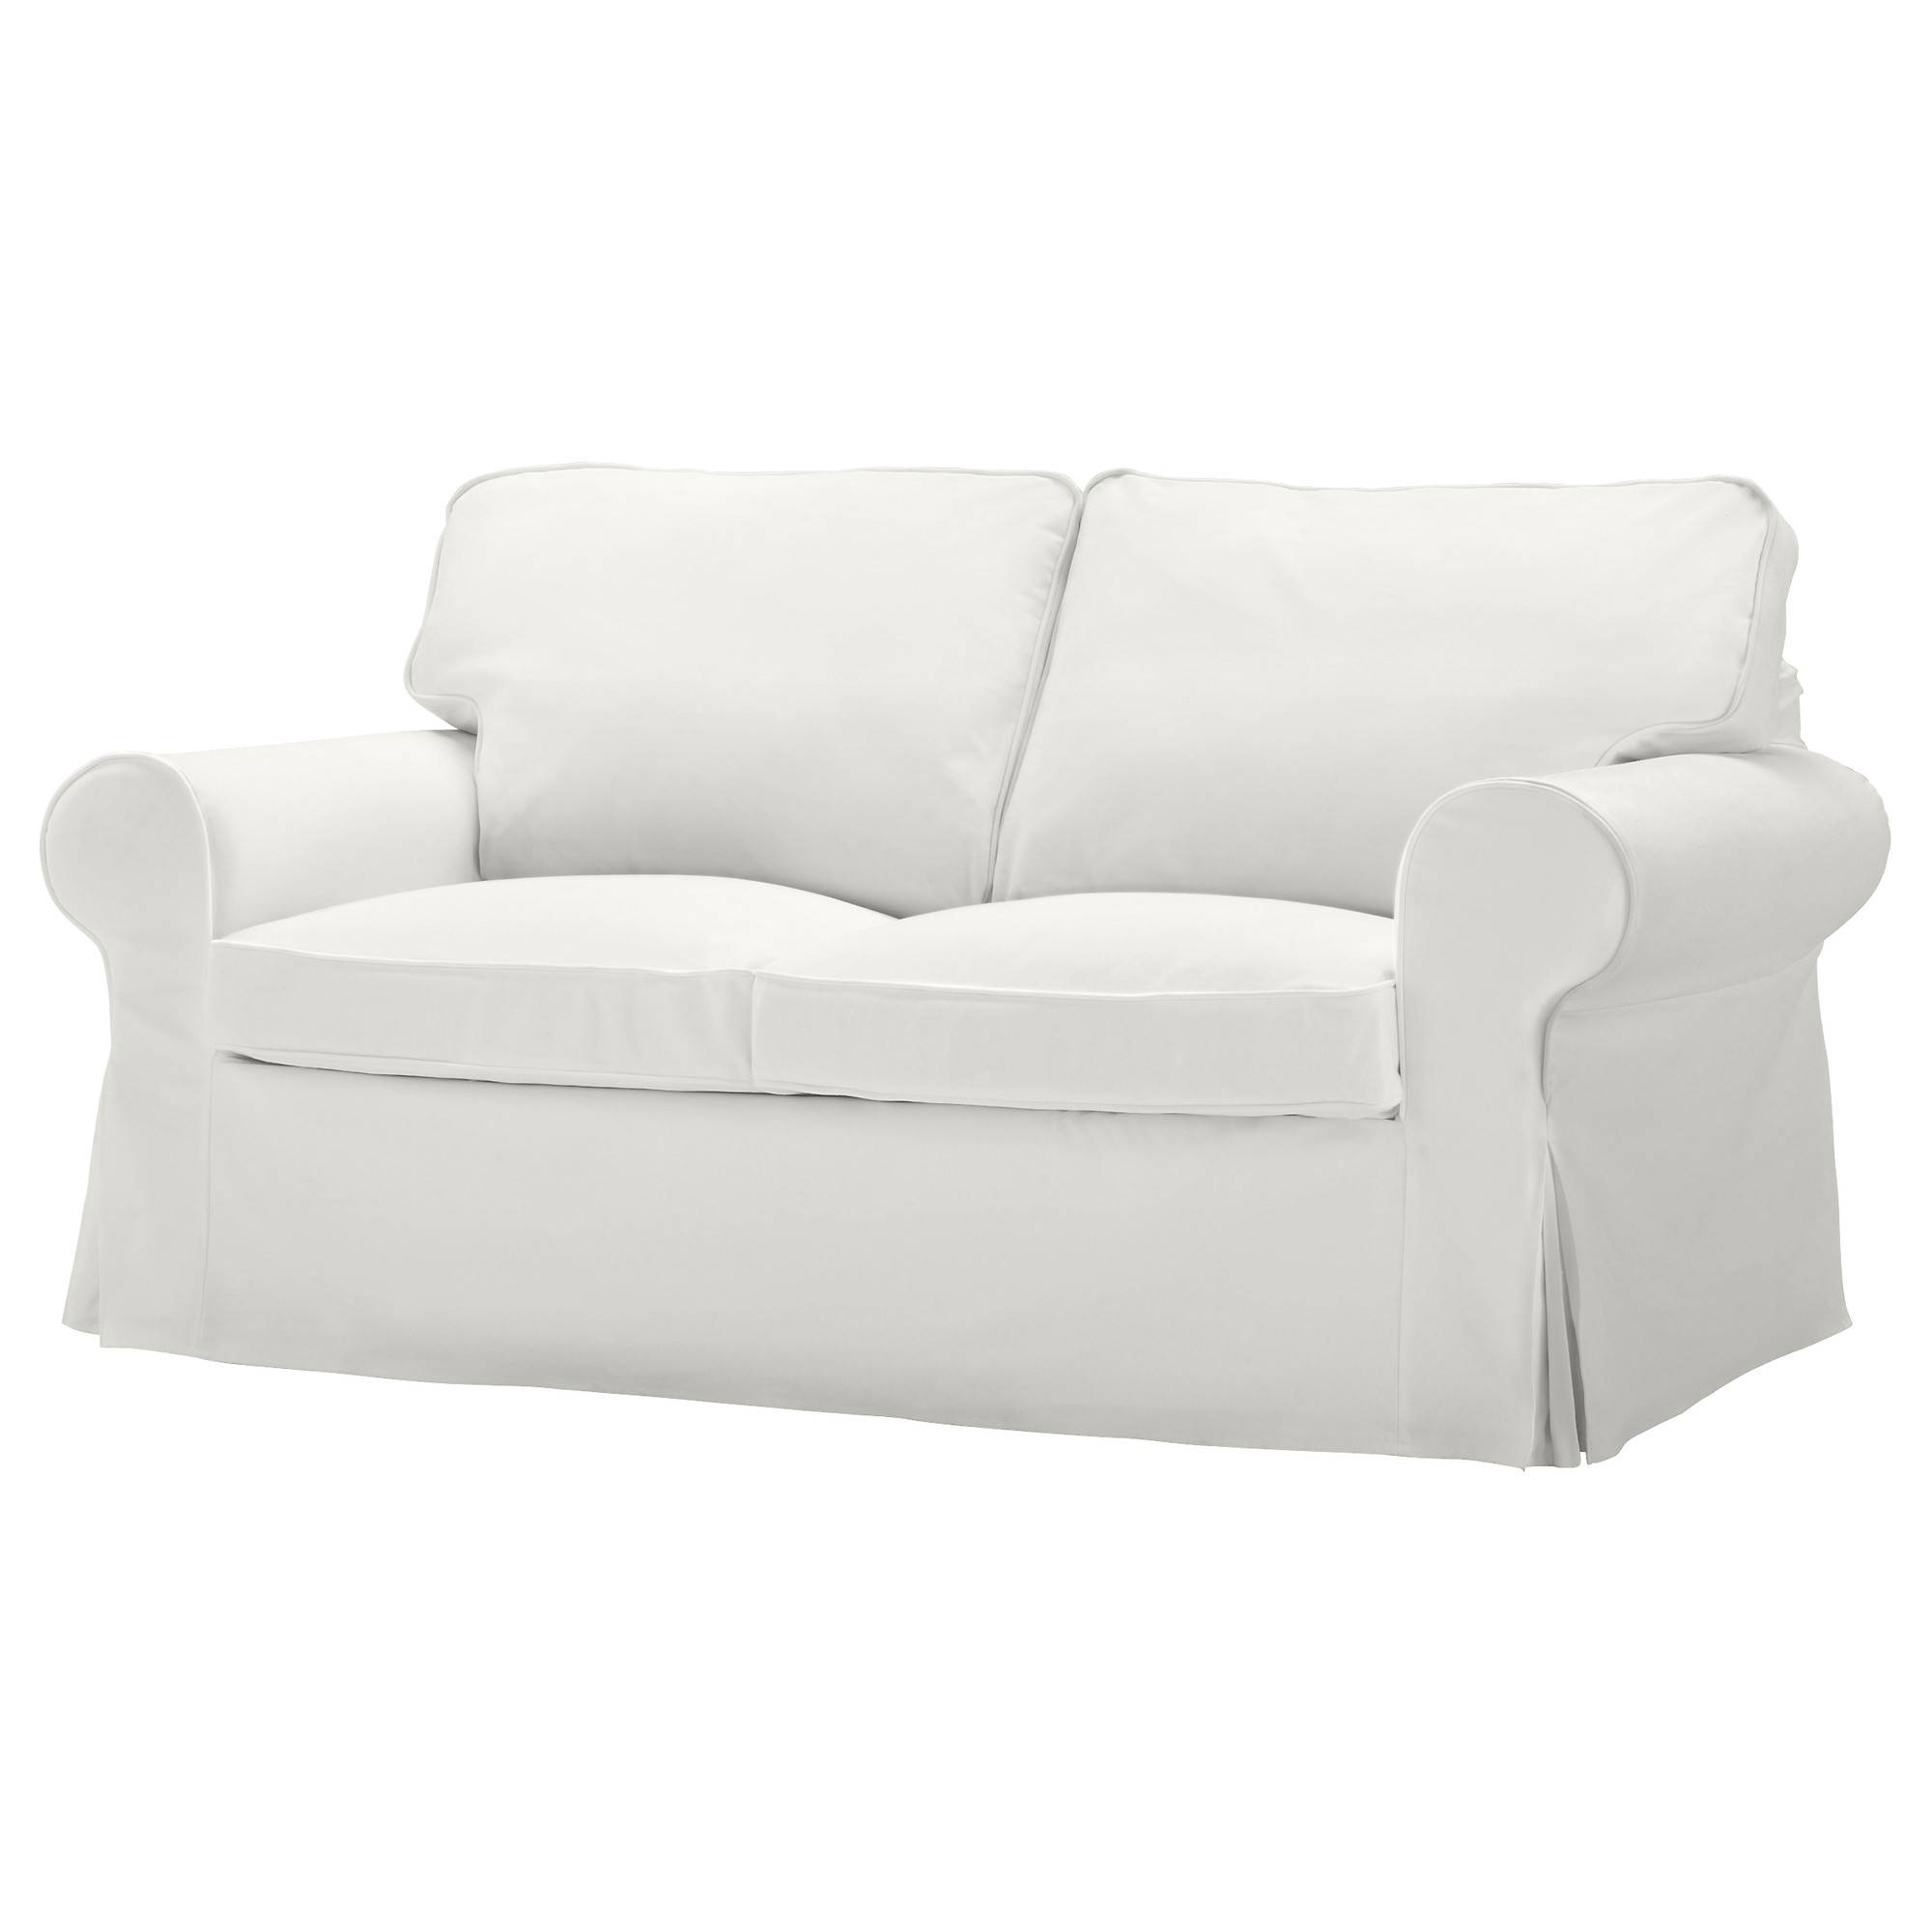 beautiful garden sofa loveseat furniture wooden and stylish best round of great sets